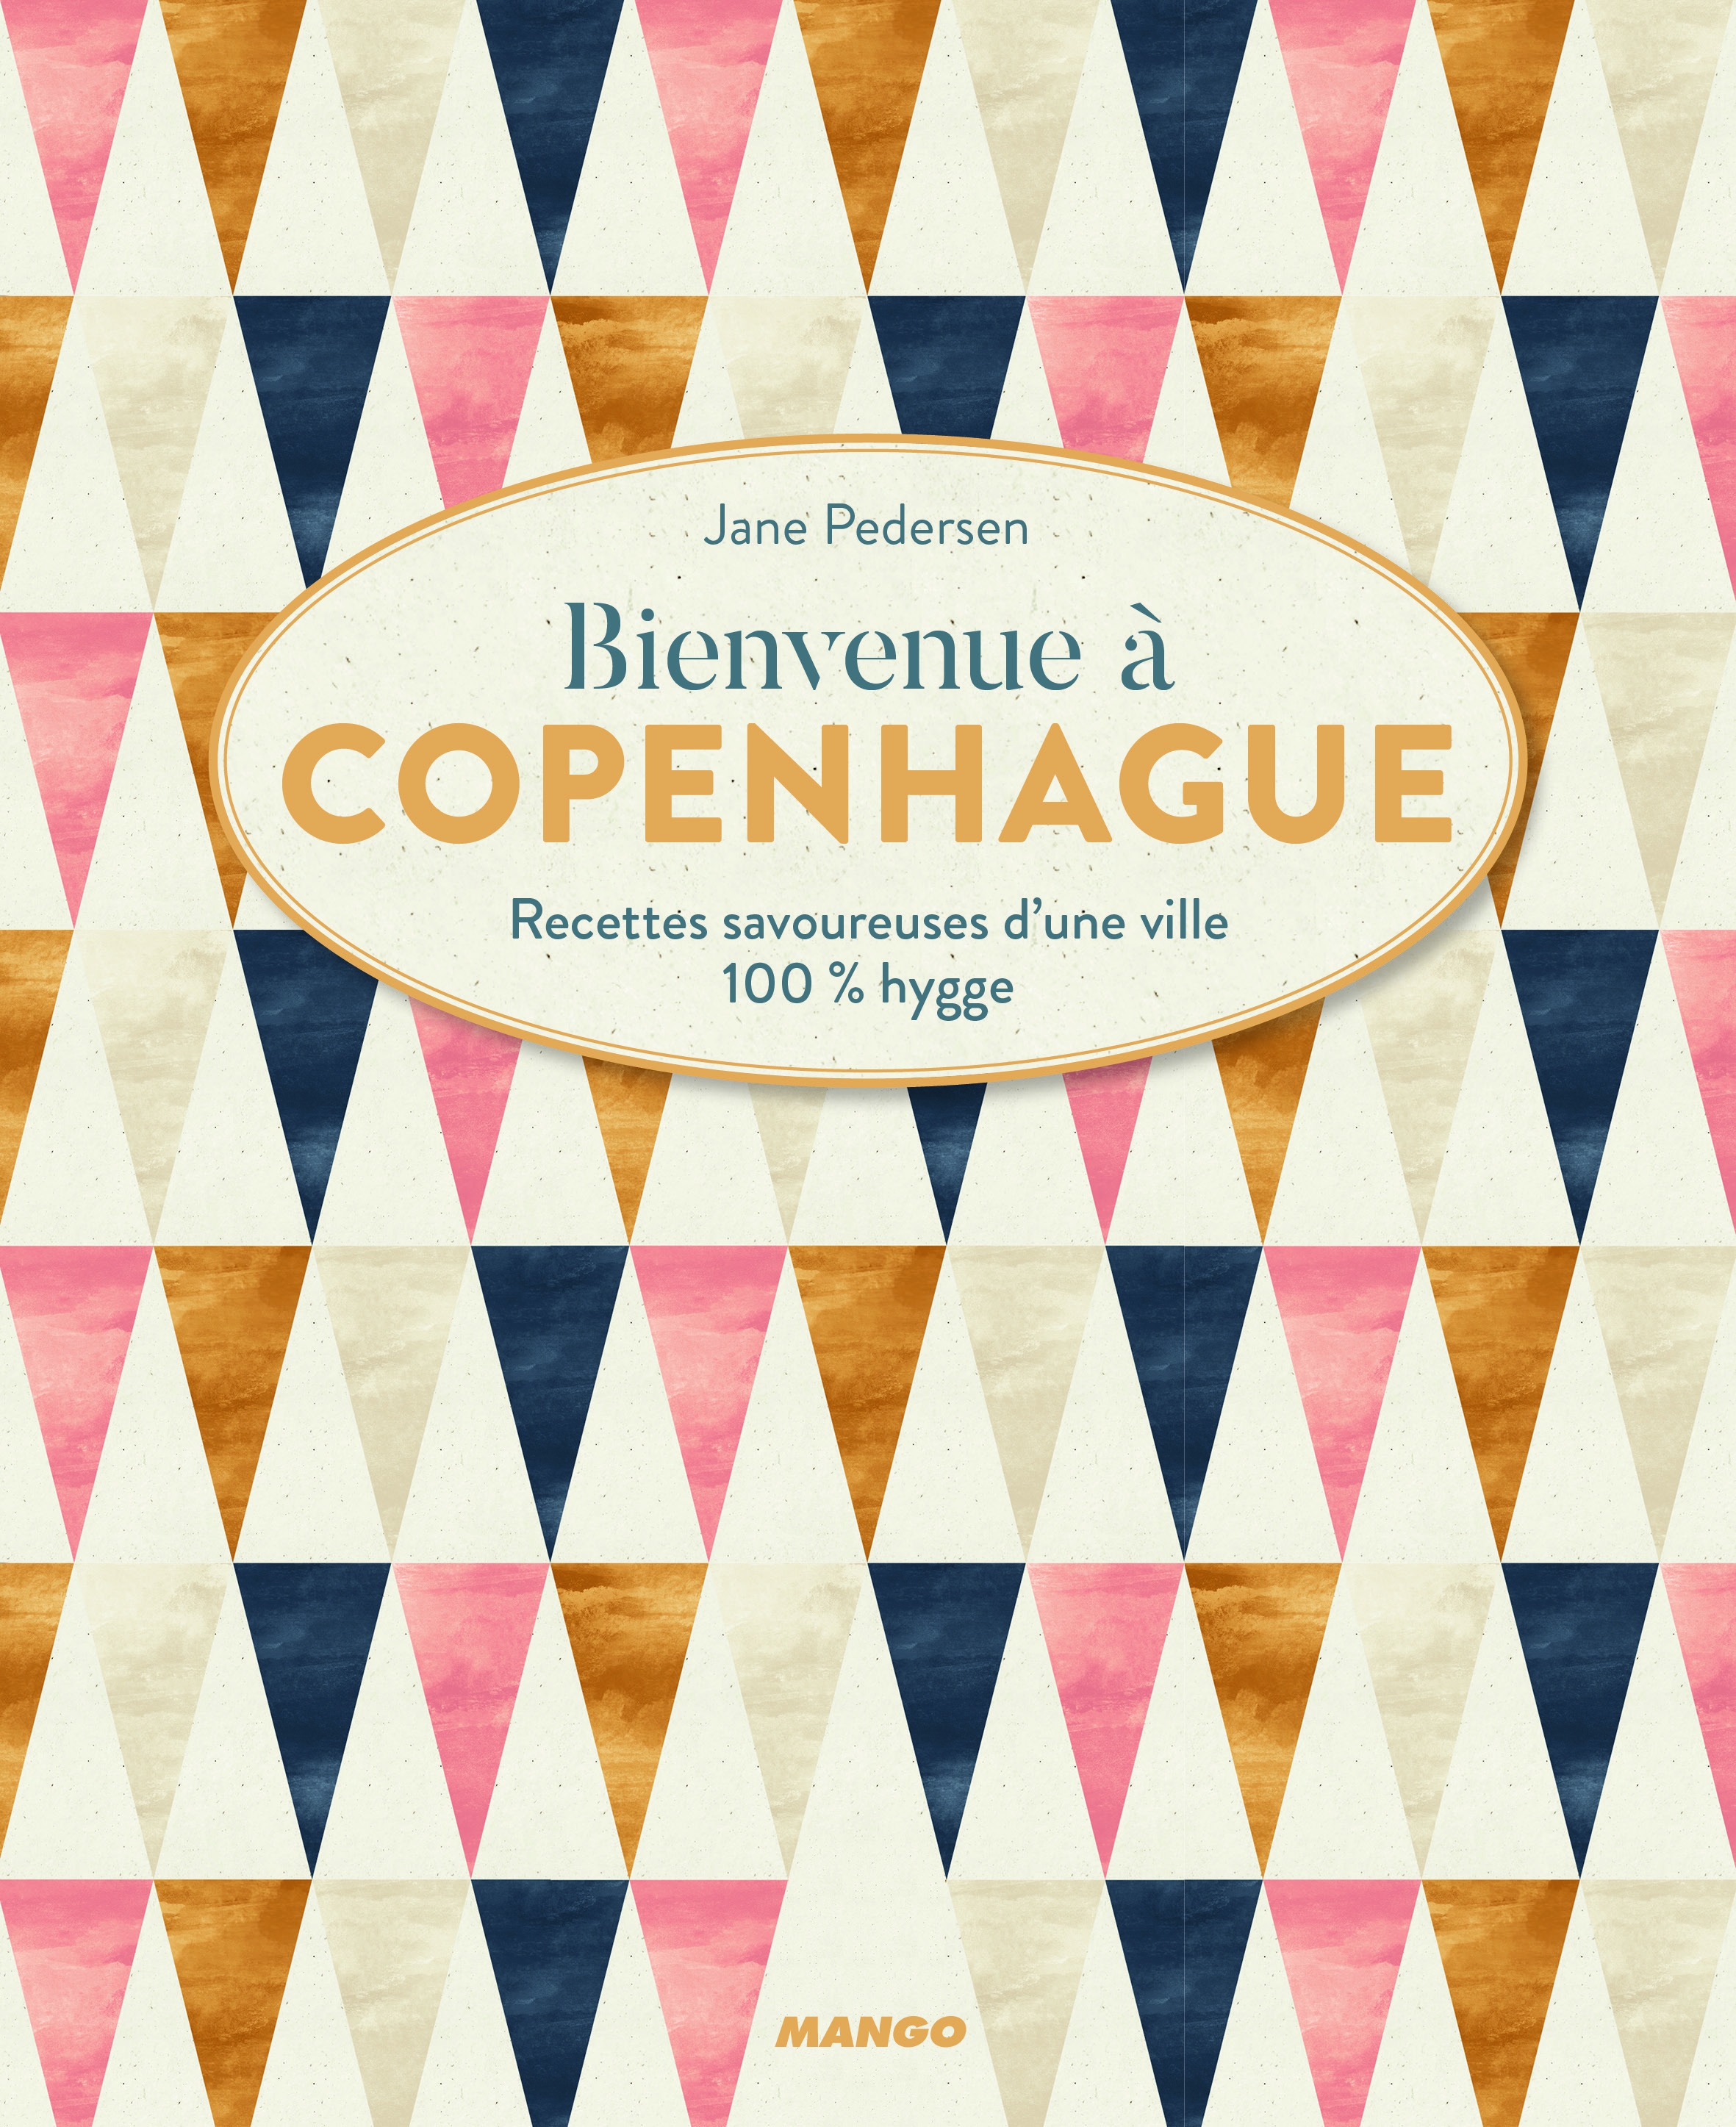 BIENVENUE A COPENHAGUE